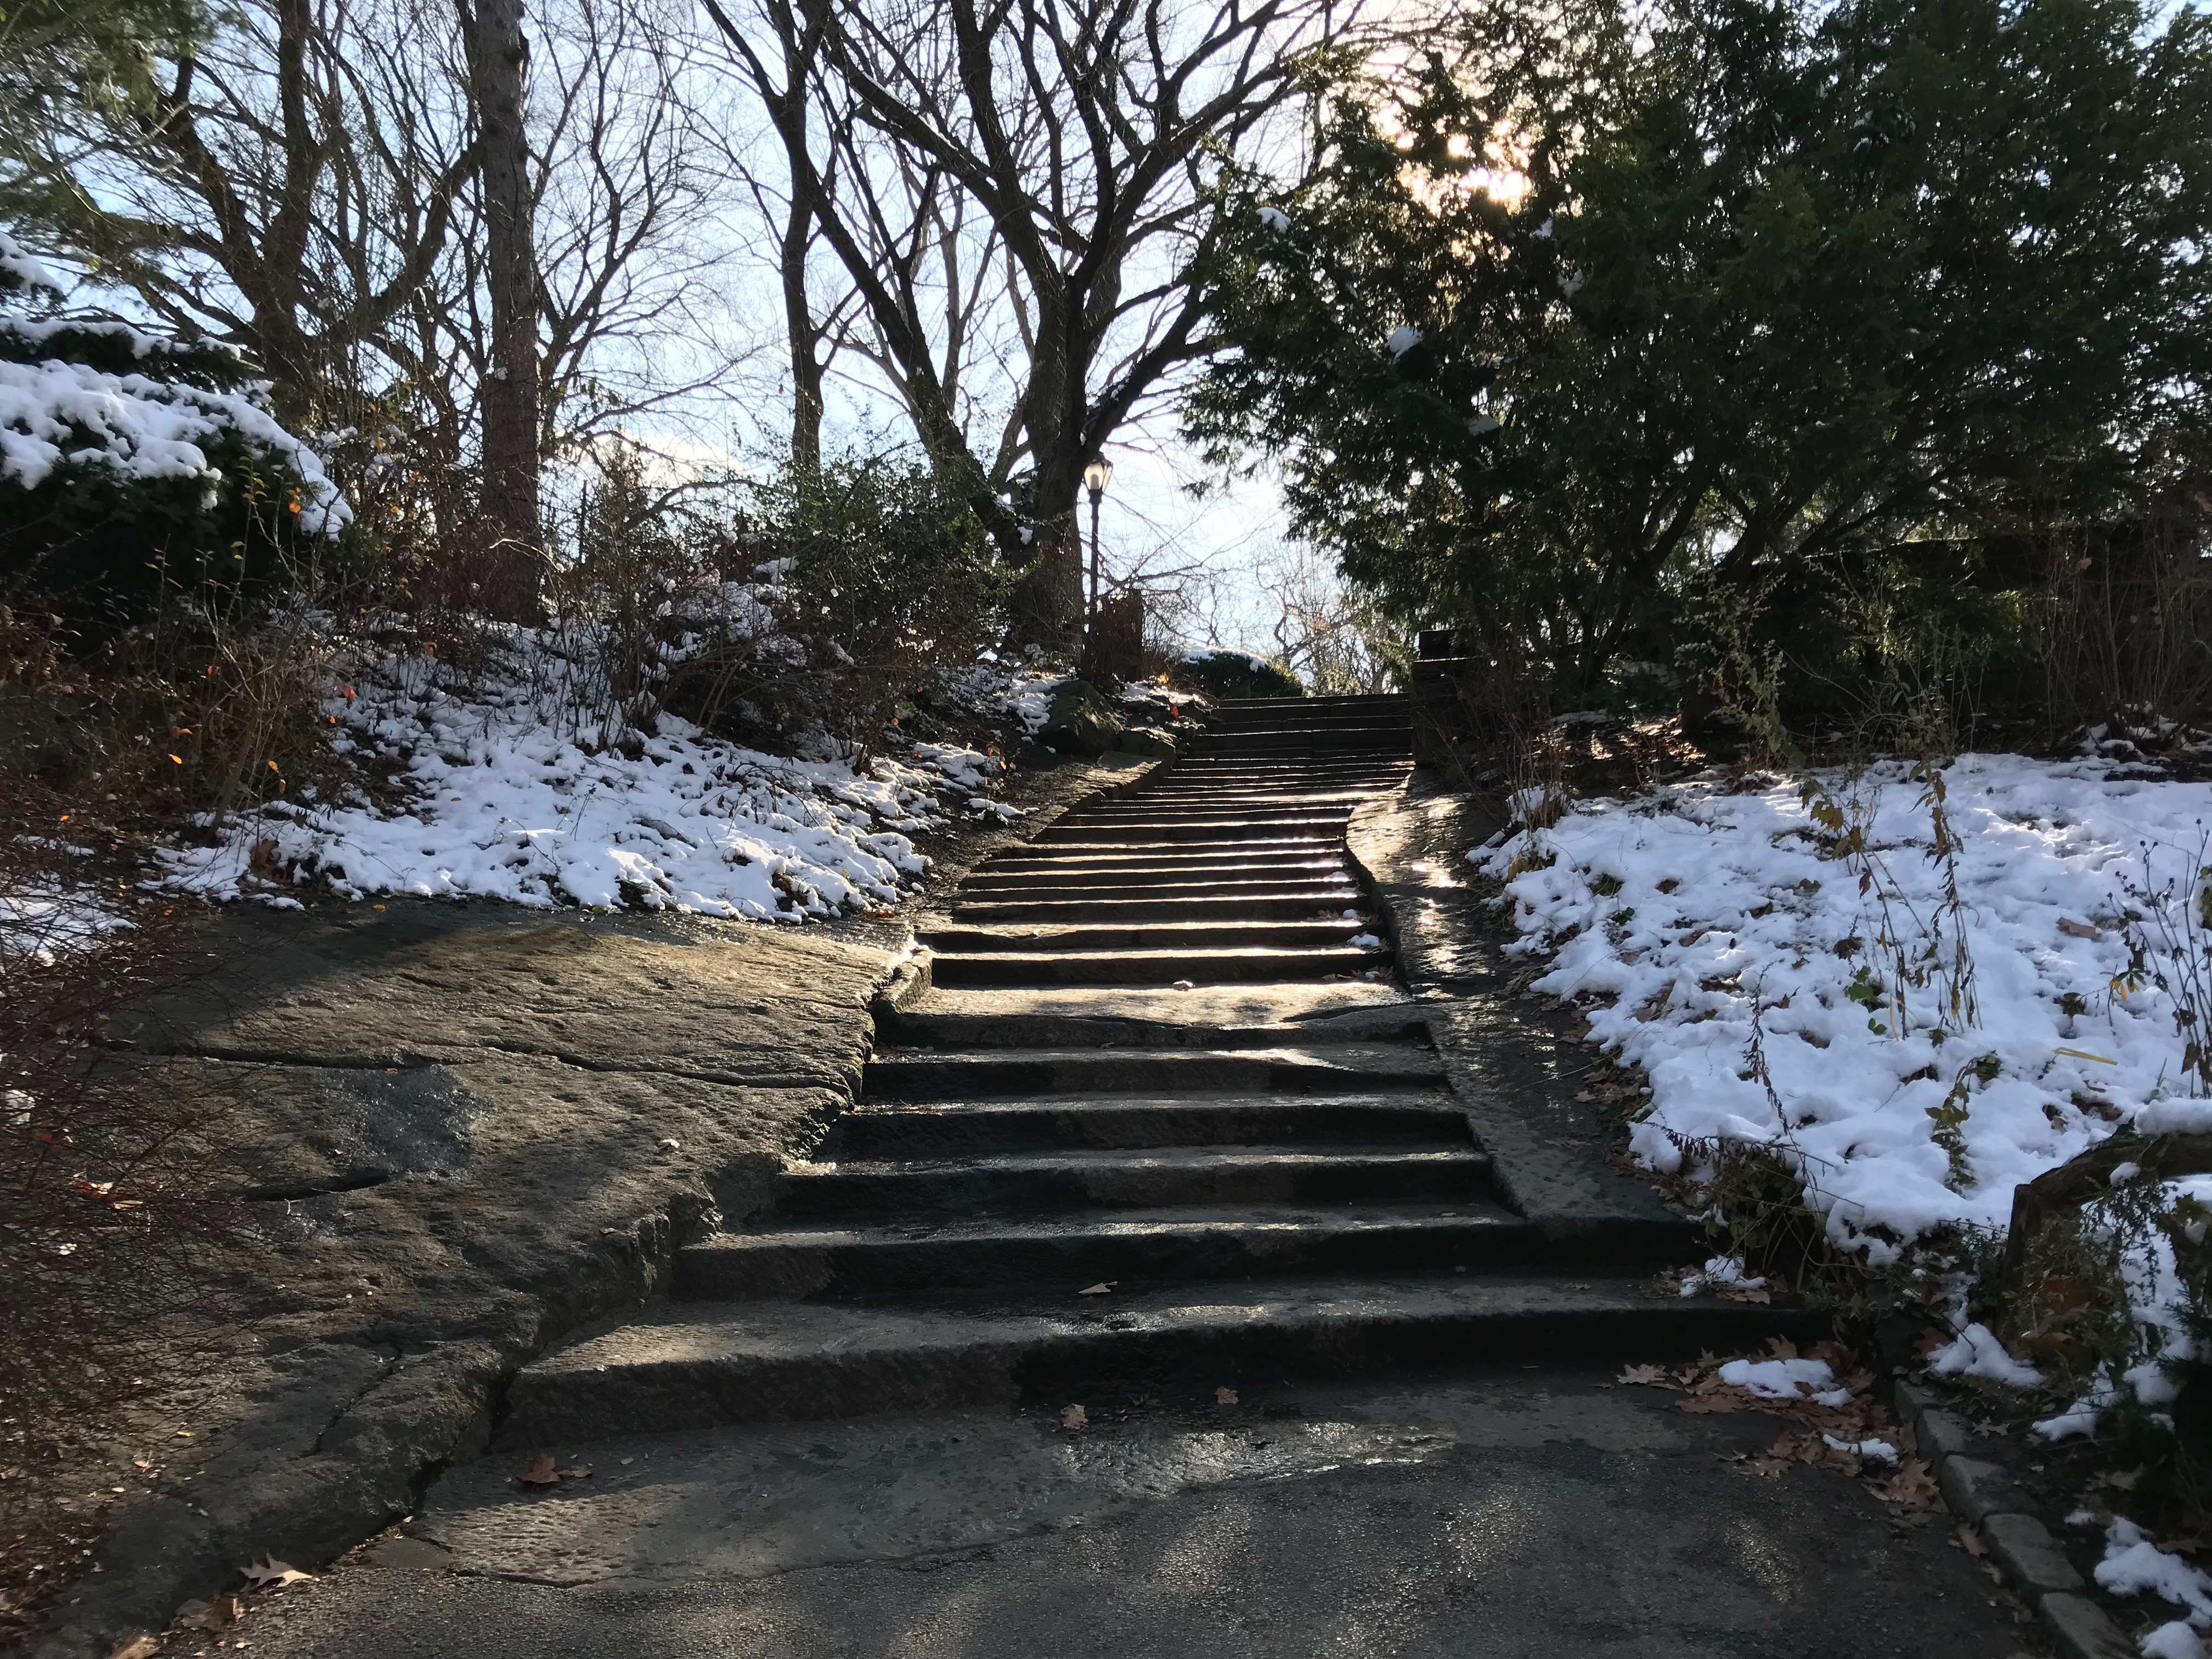 A stairway in the Shakespeare Garden in Central Park in New York City. (DCNF/Ethan Barton)